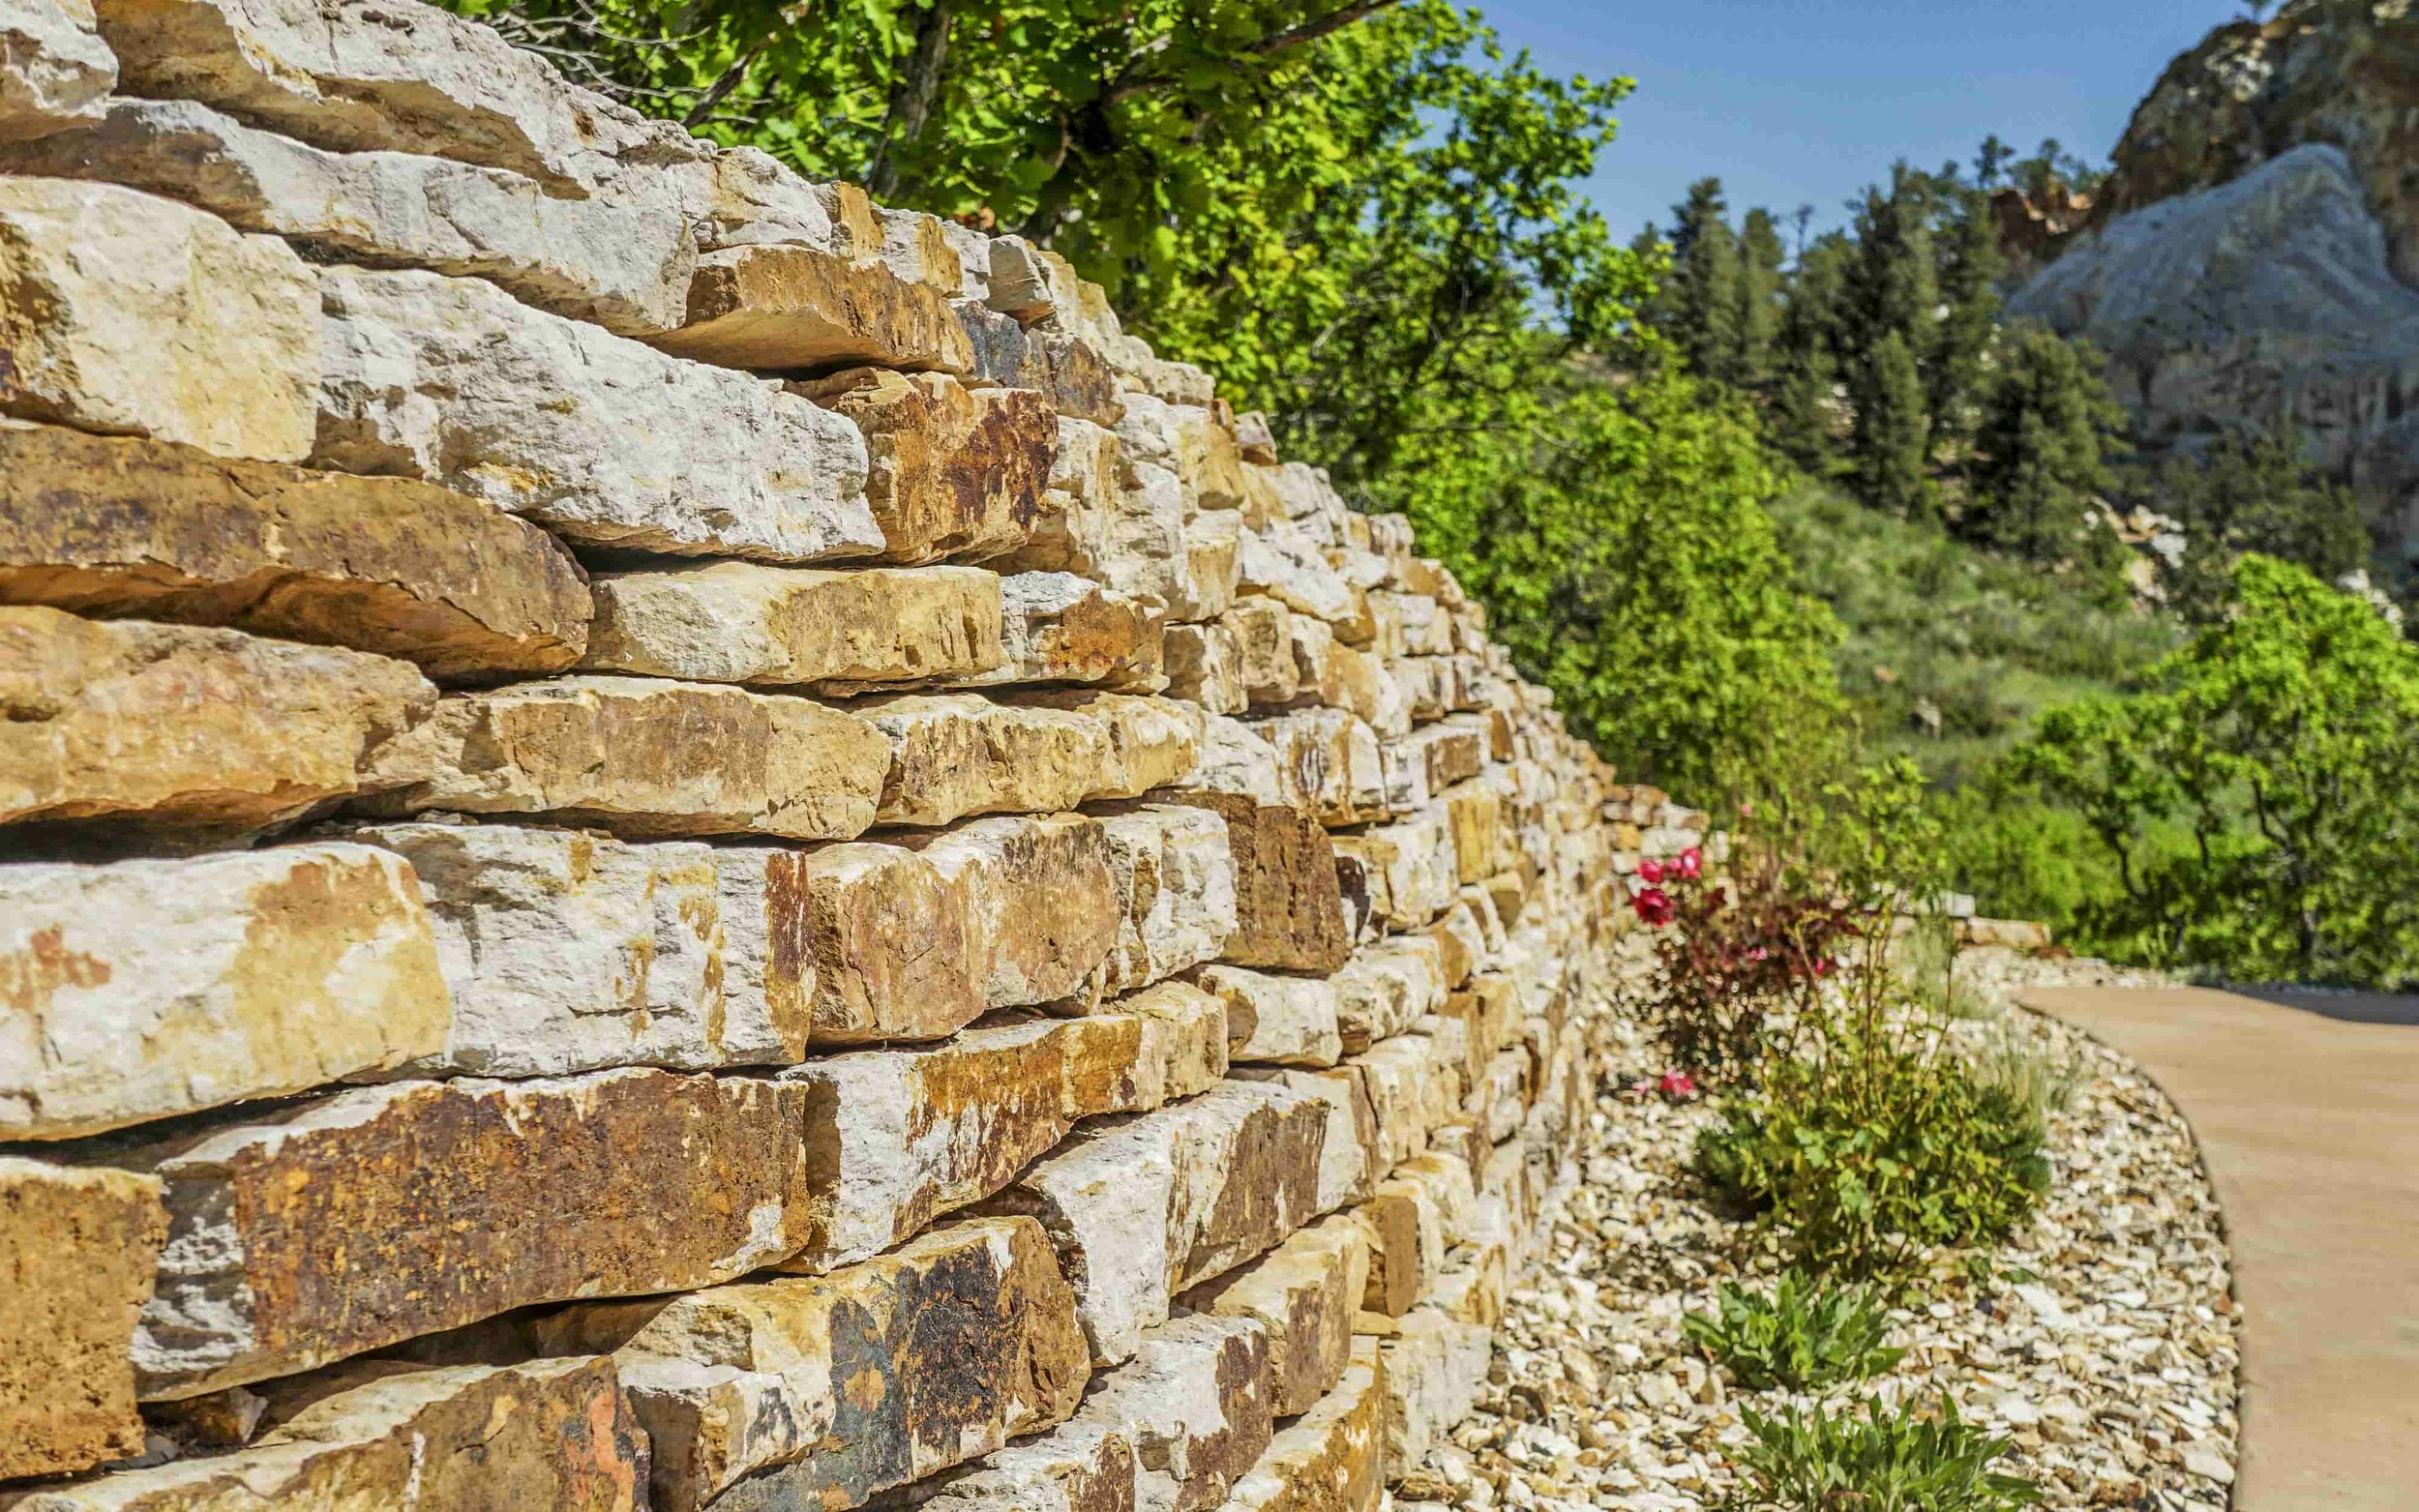 Retaining Walls - Retaining walls can be both beautiful and functional. Here at C&C, we have you covered with all options.